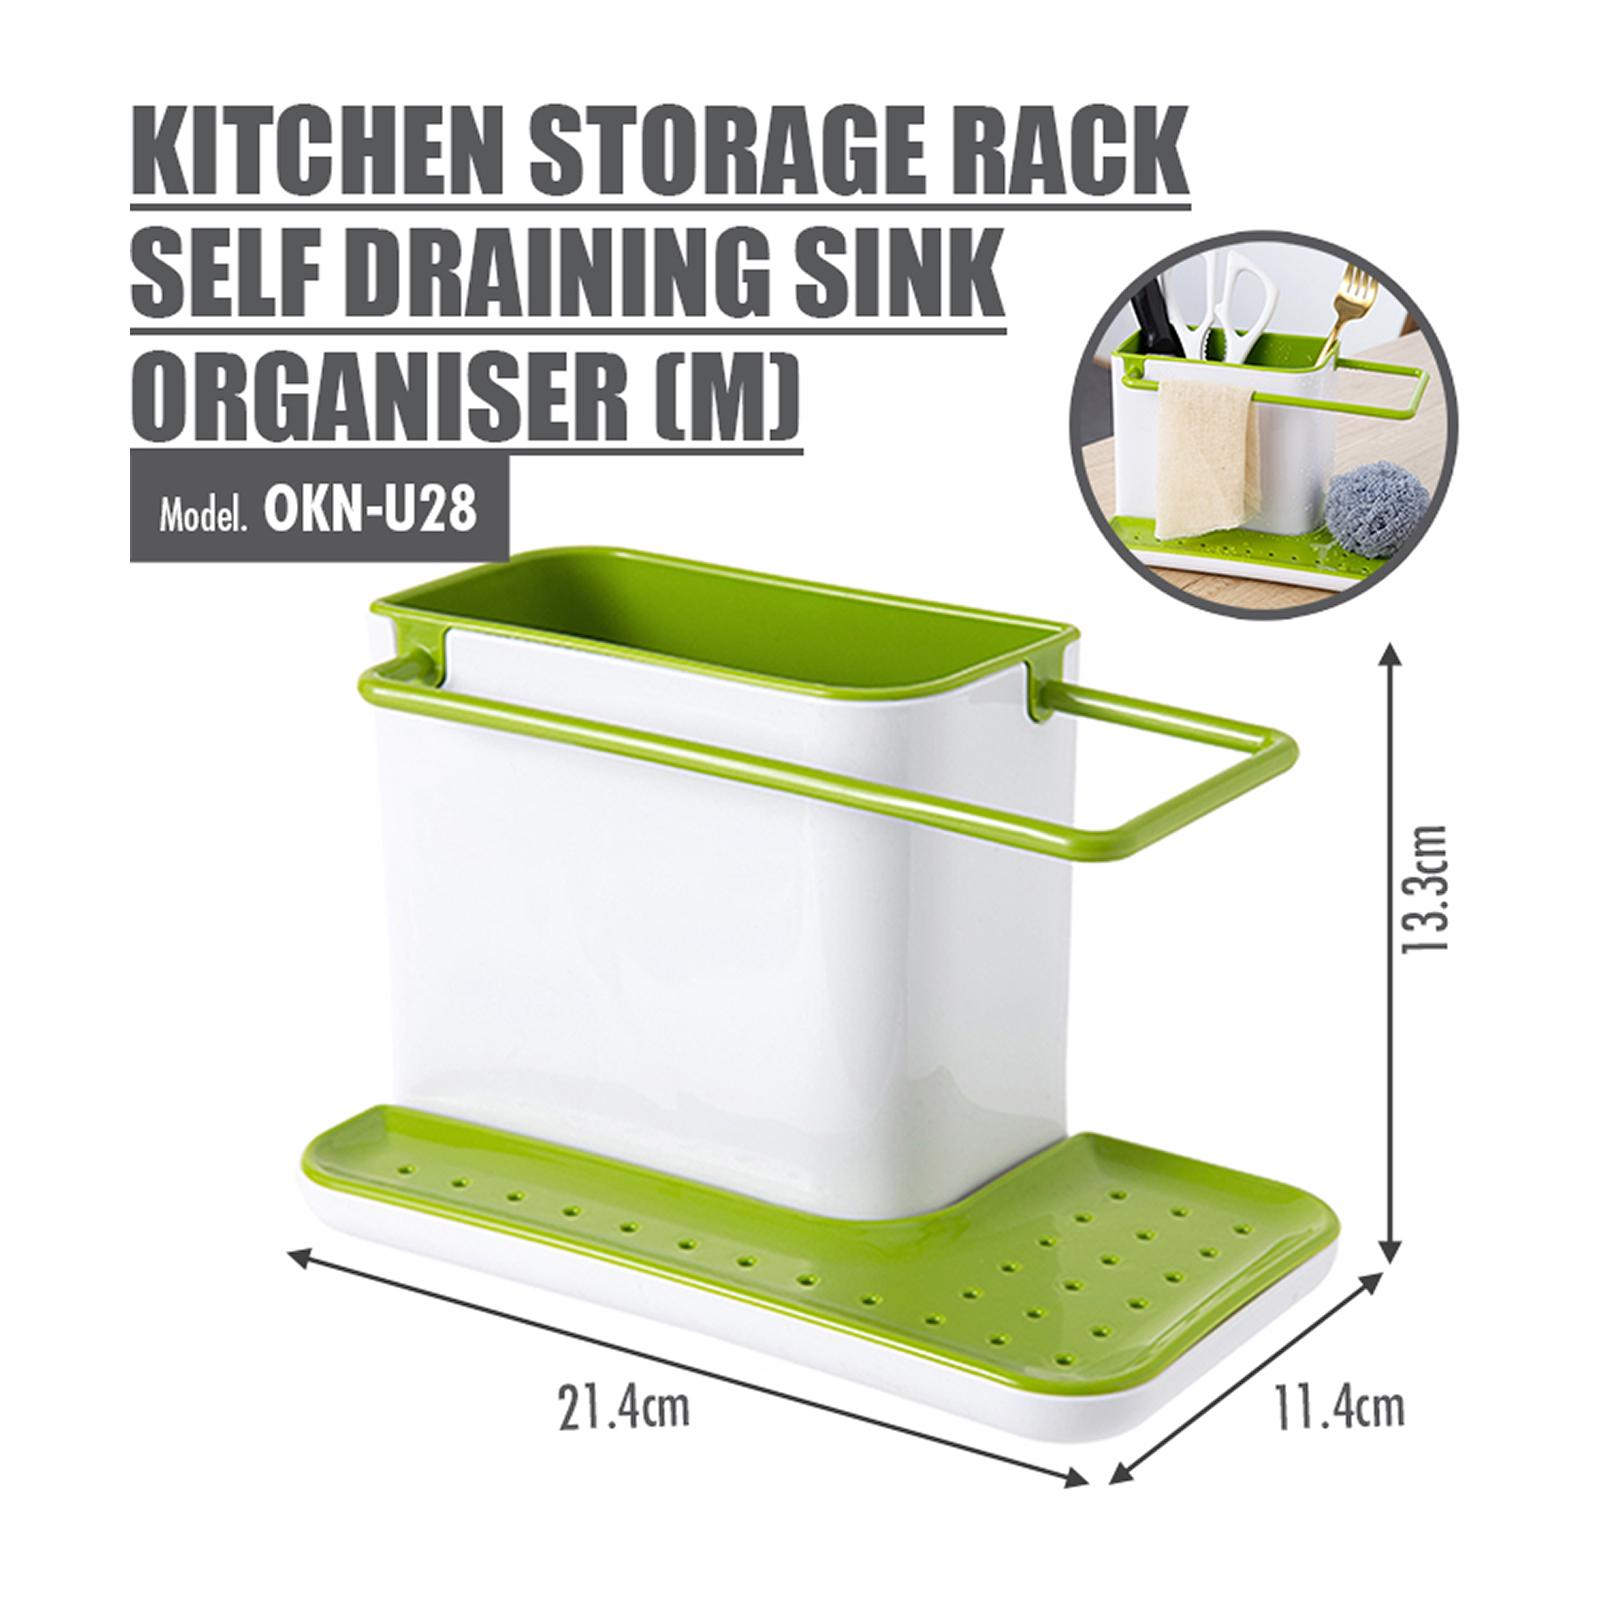 HOUZE Kitchen Storage Rack Self Draining Sink Organiser (Medium)